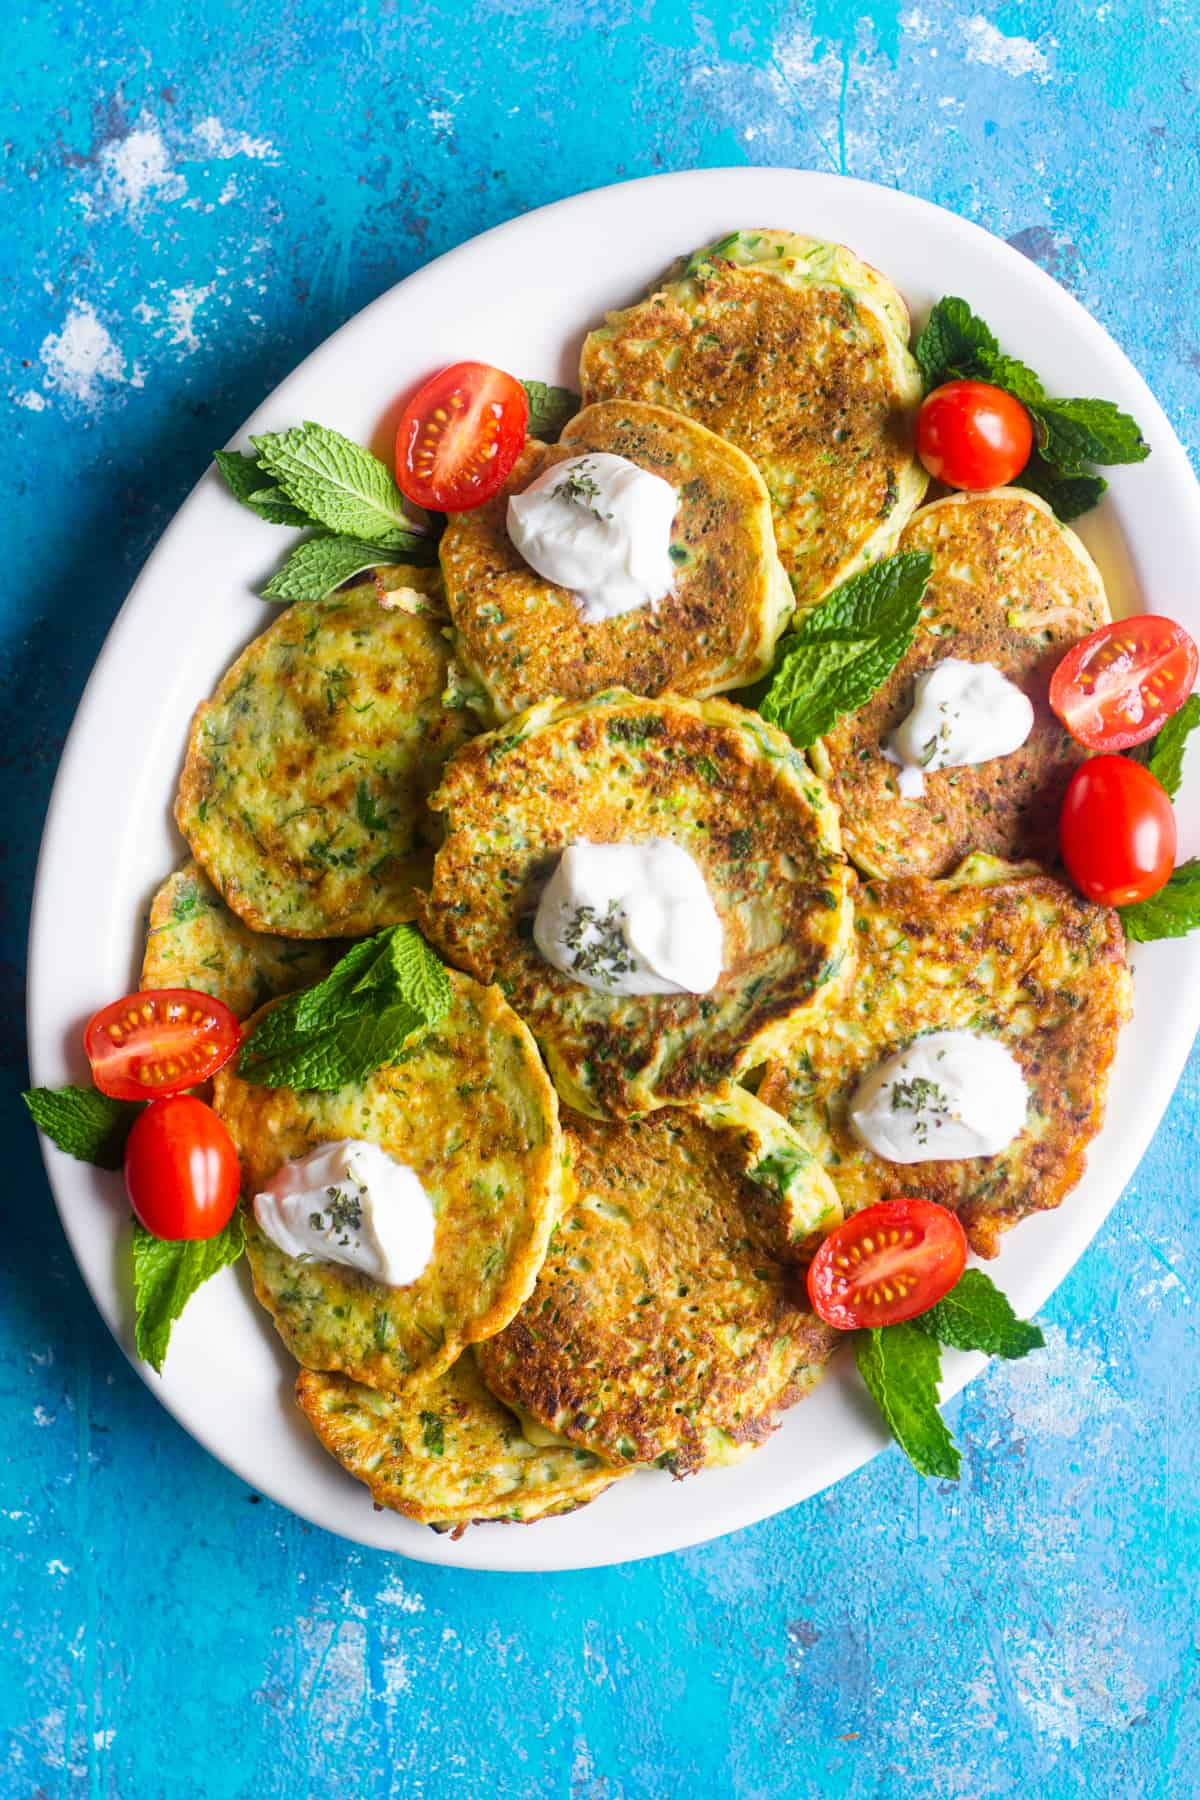 A plate of zucchini fritters topped with yogurt.